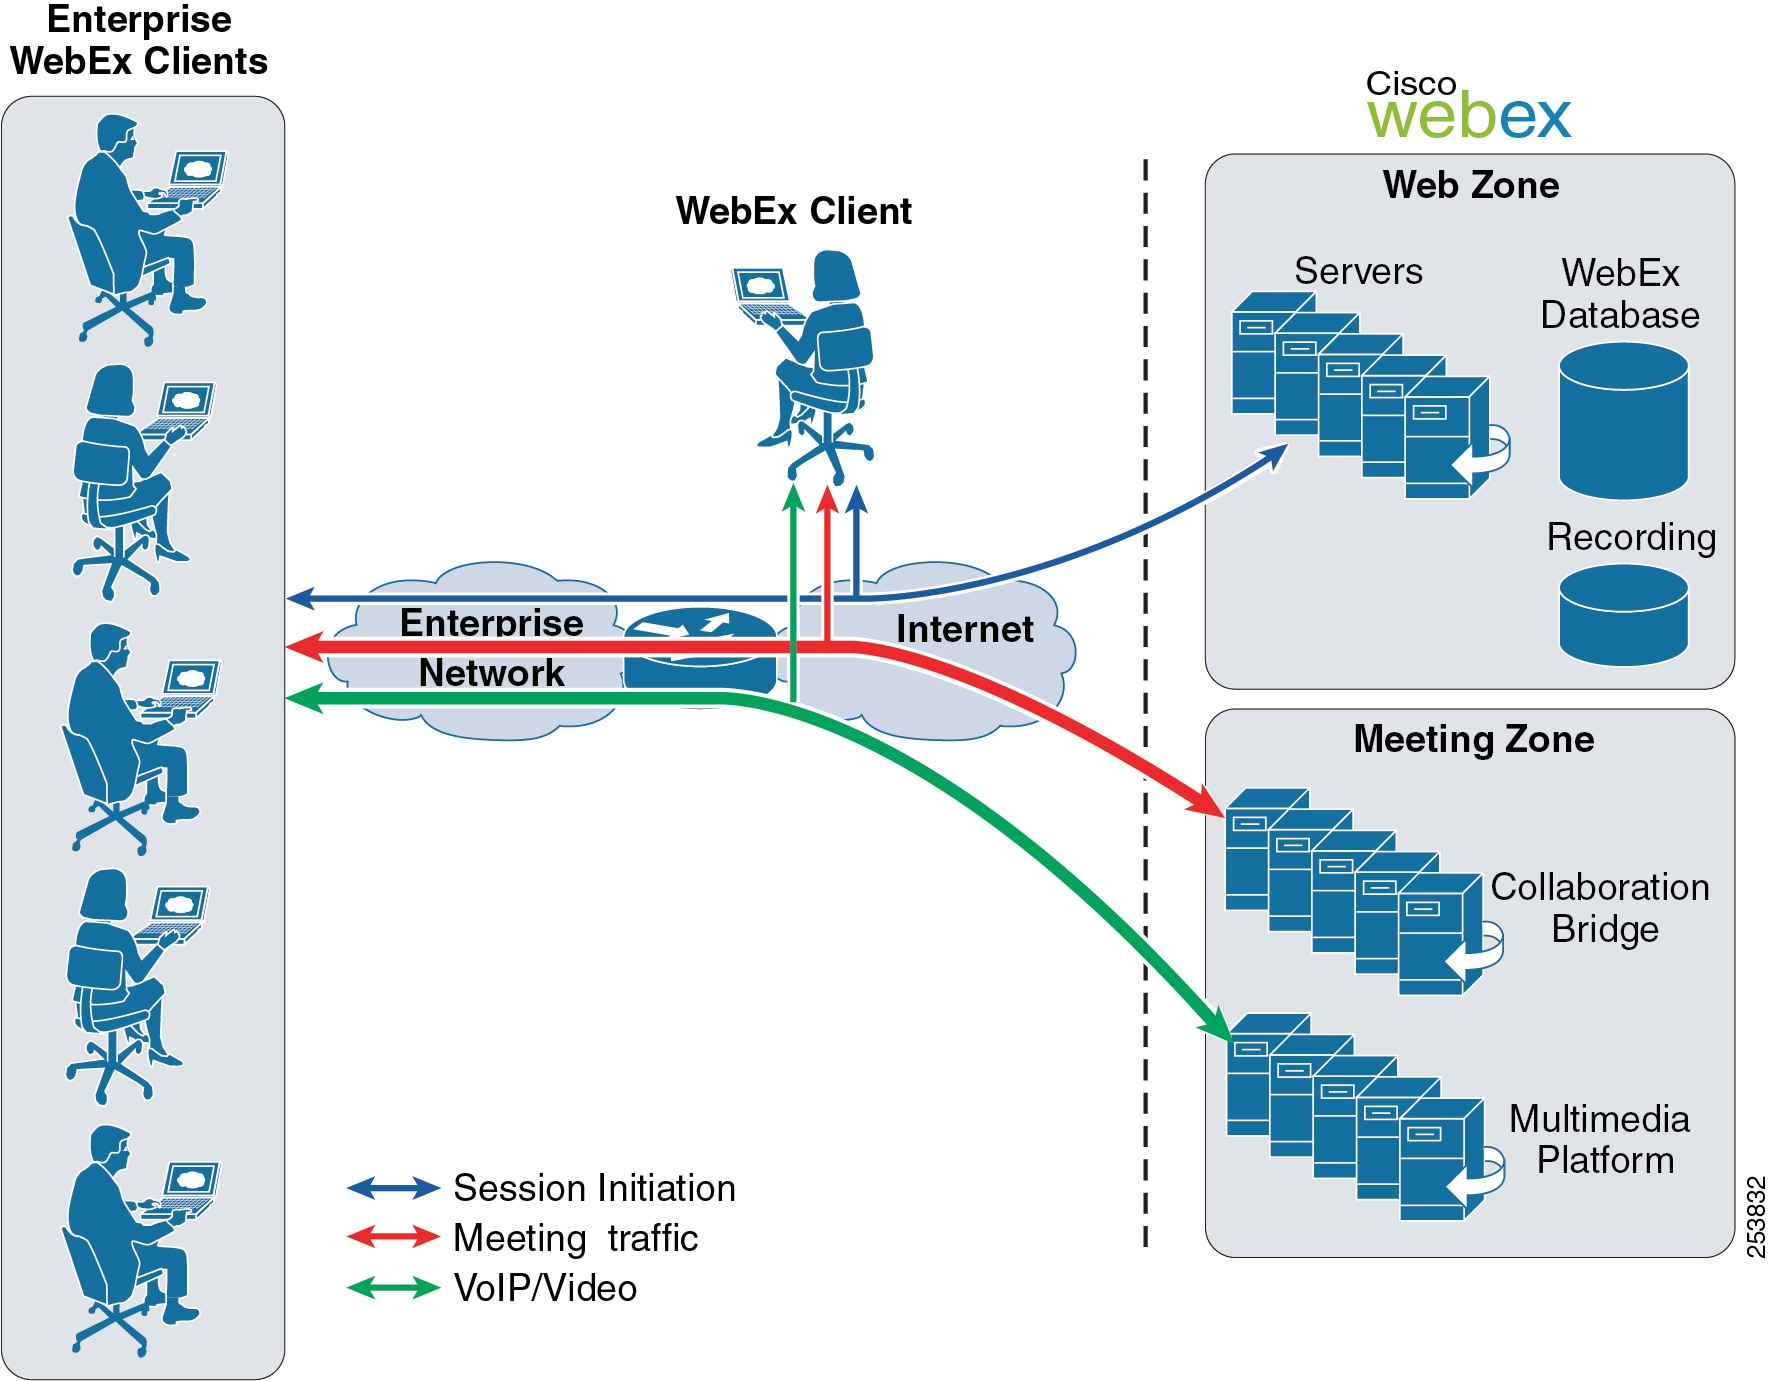 how to download webex recording from server